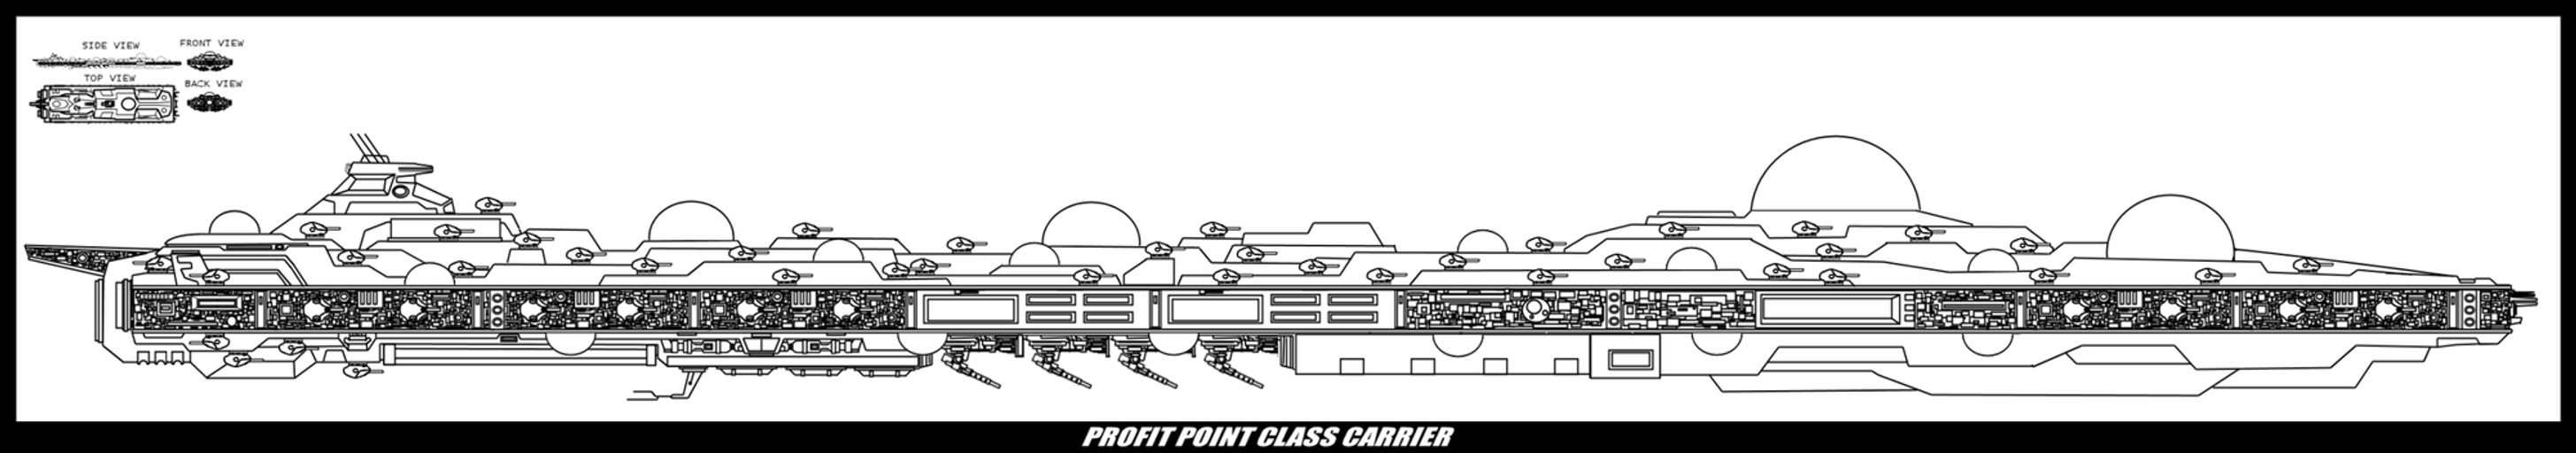 Profit Point Class Carrier by Evilonavich